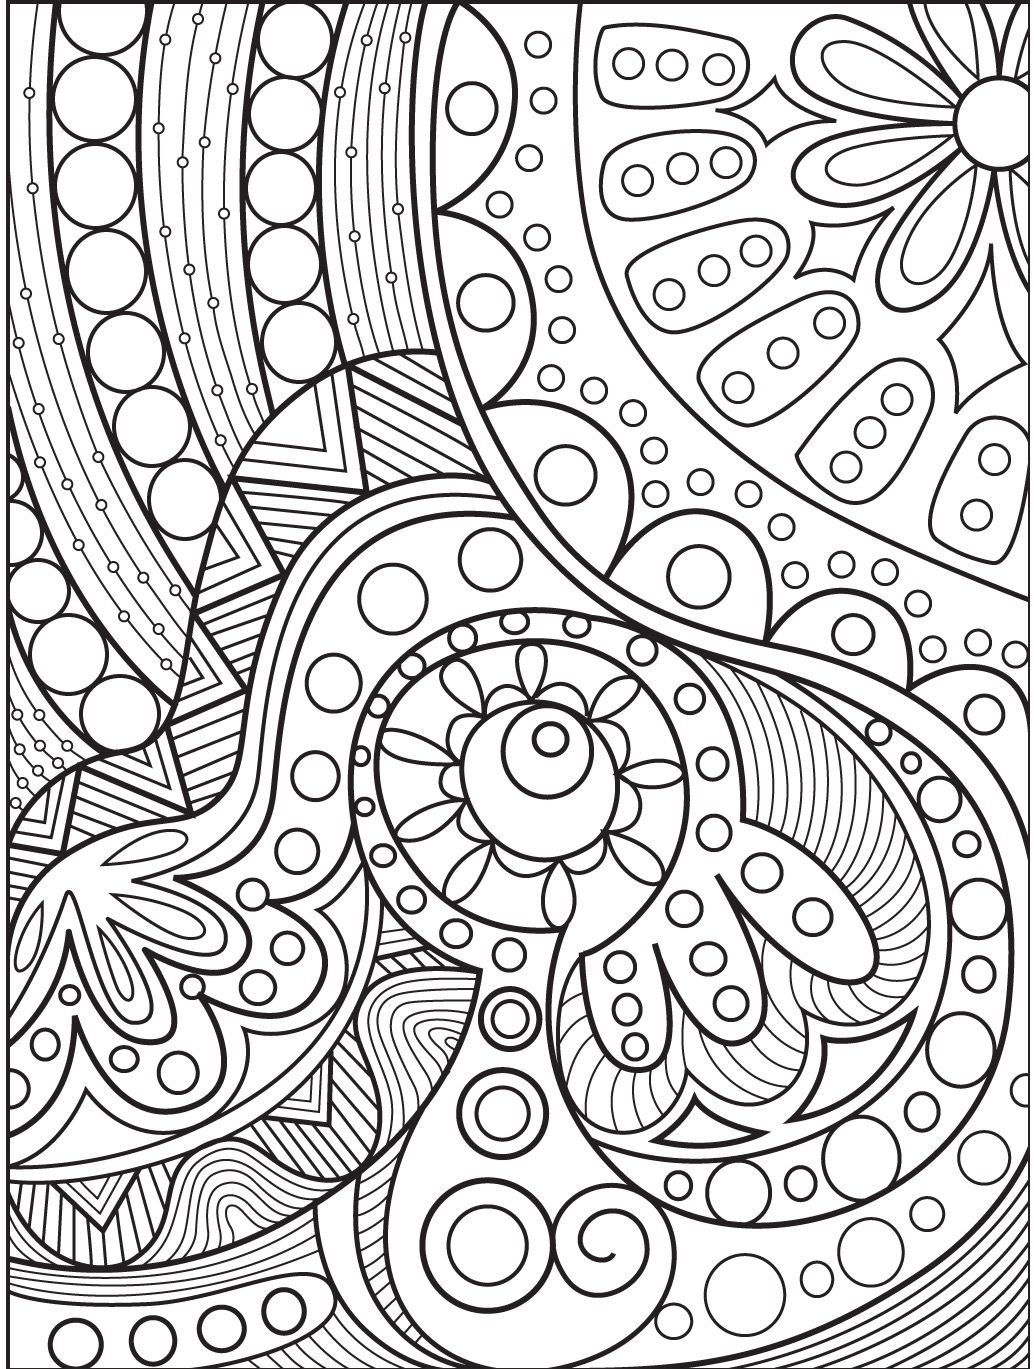 abstract coloring page # 4